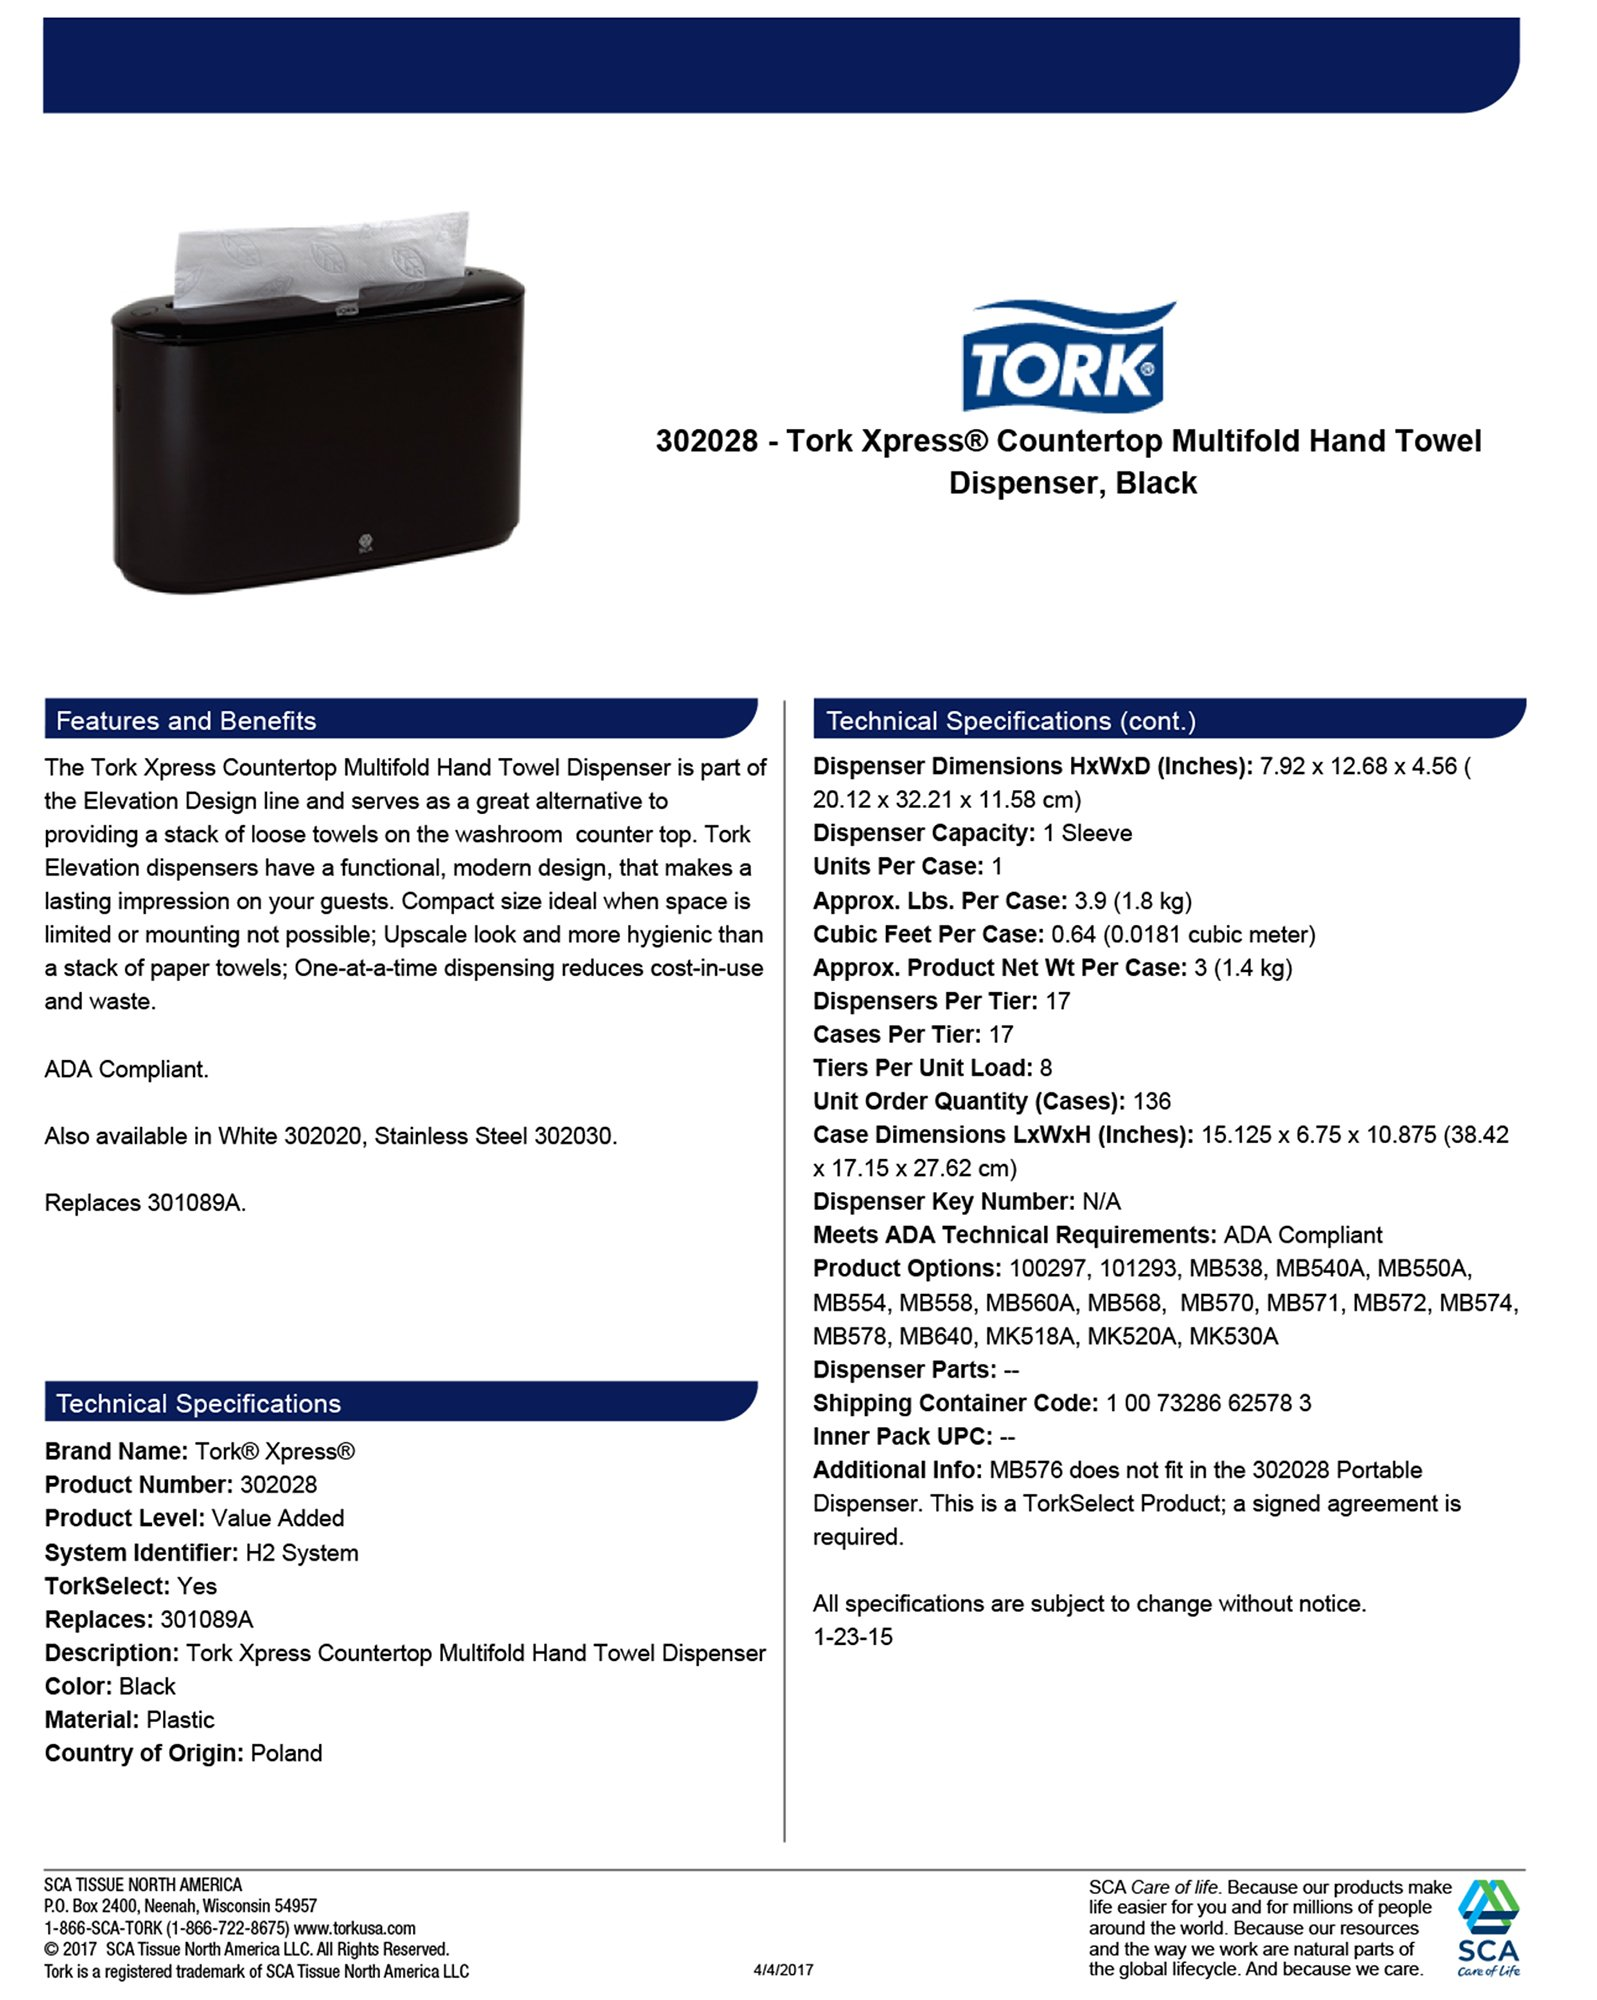 Tork 302028 Xpress Countertop Multifold Hand Towel Dispenser, Plastic, 7.92'' Height x 12.68'' Width x 4.56'' Depth, Black, for use with Tork MB550A, MB640, MB540A, H2/H23 by Tork (Image #4)